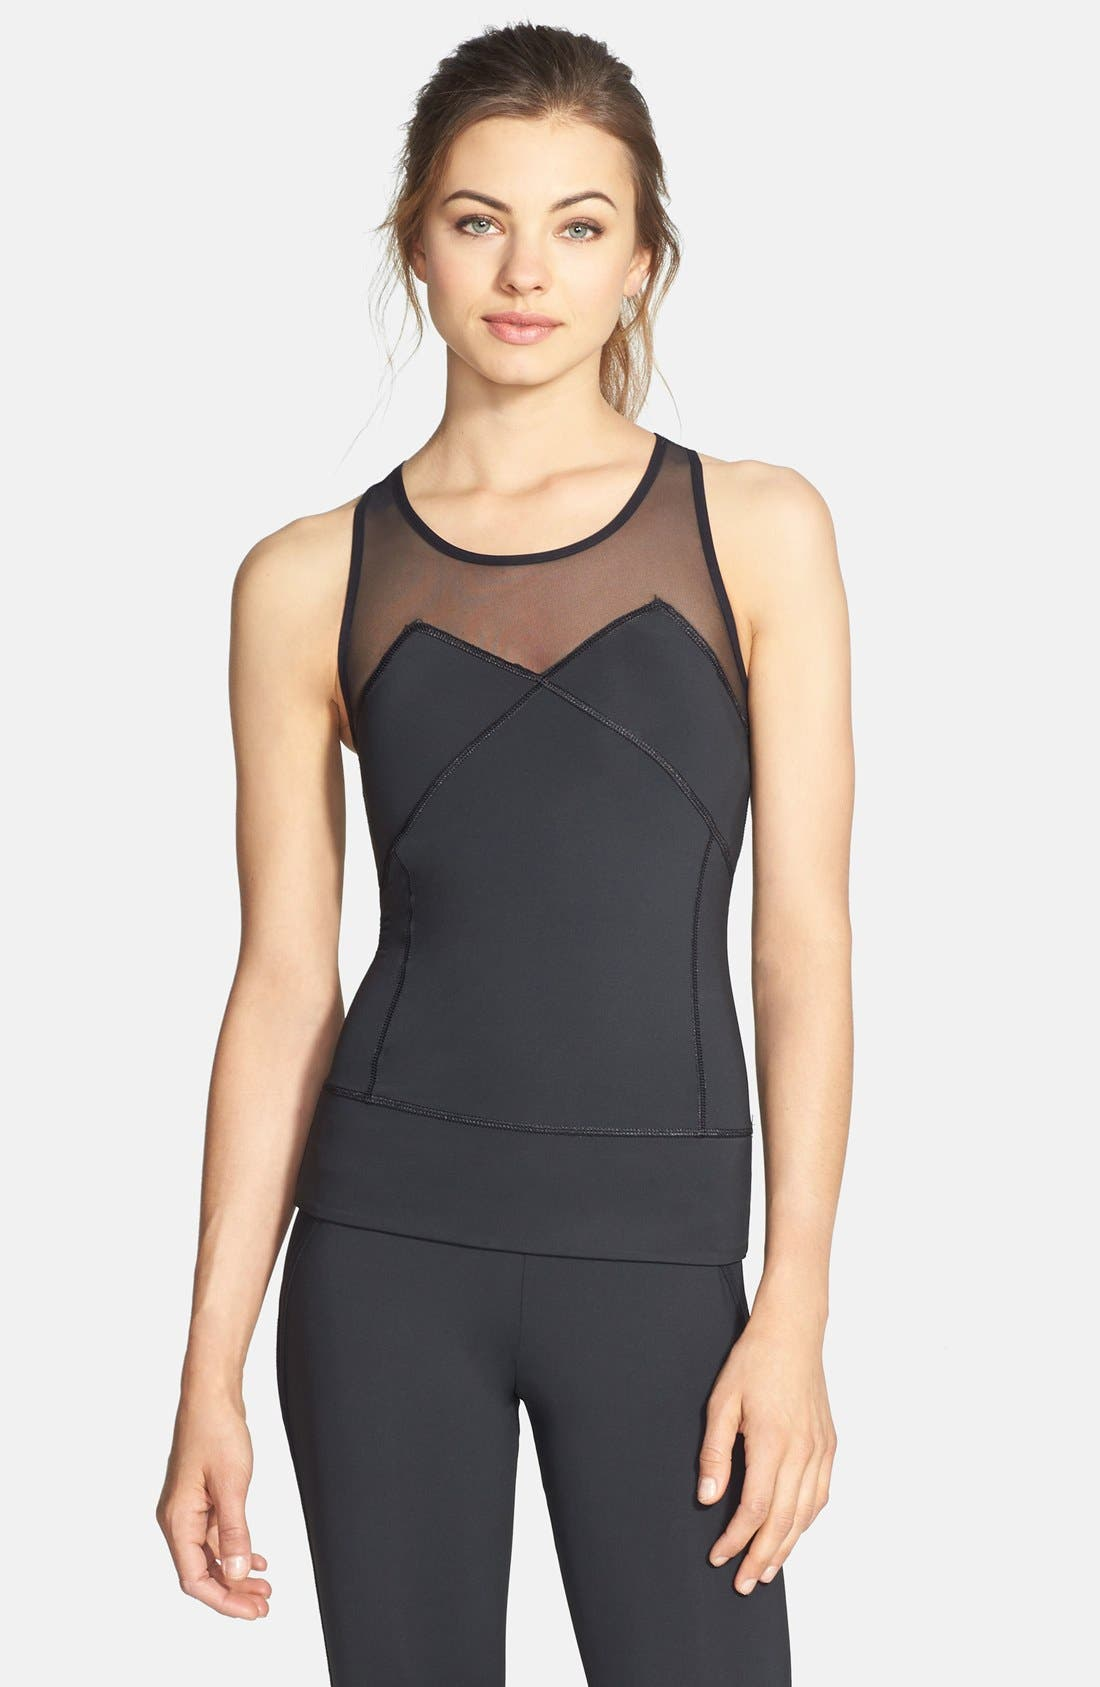 Alternate Image 1 Selected - adidas by Stella McCartney 'Run' Performance Tank